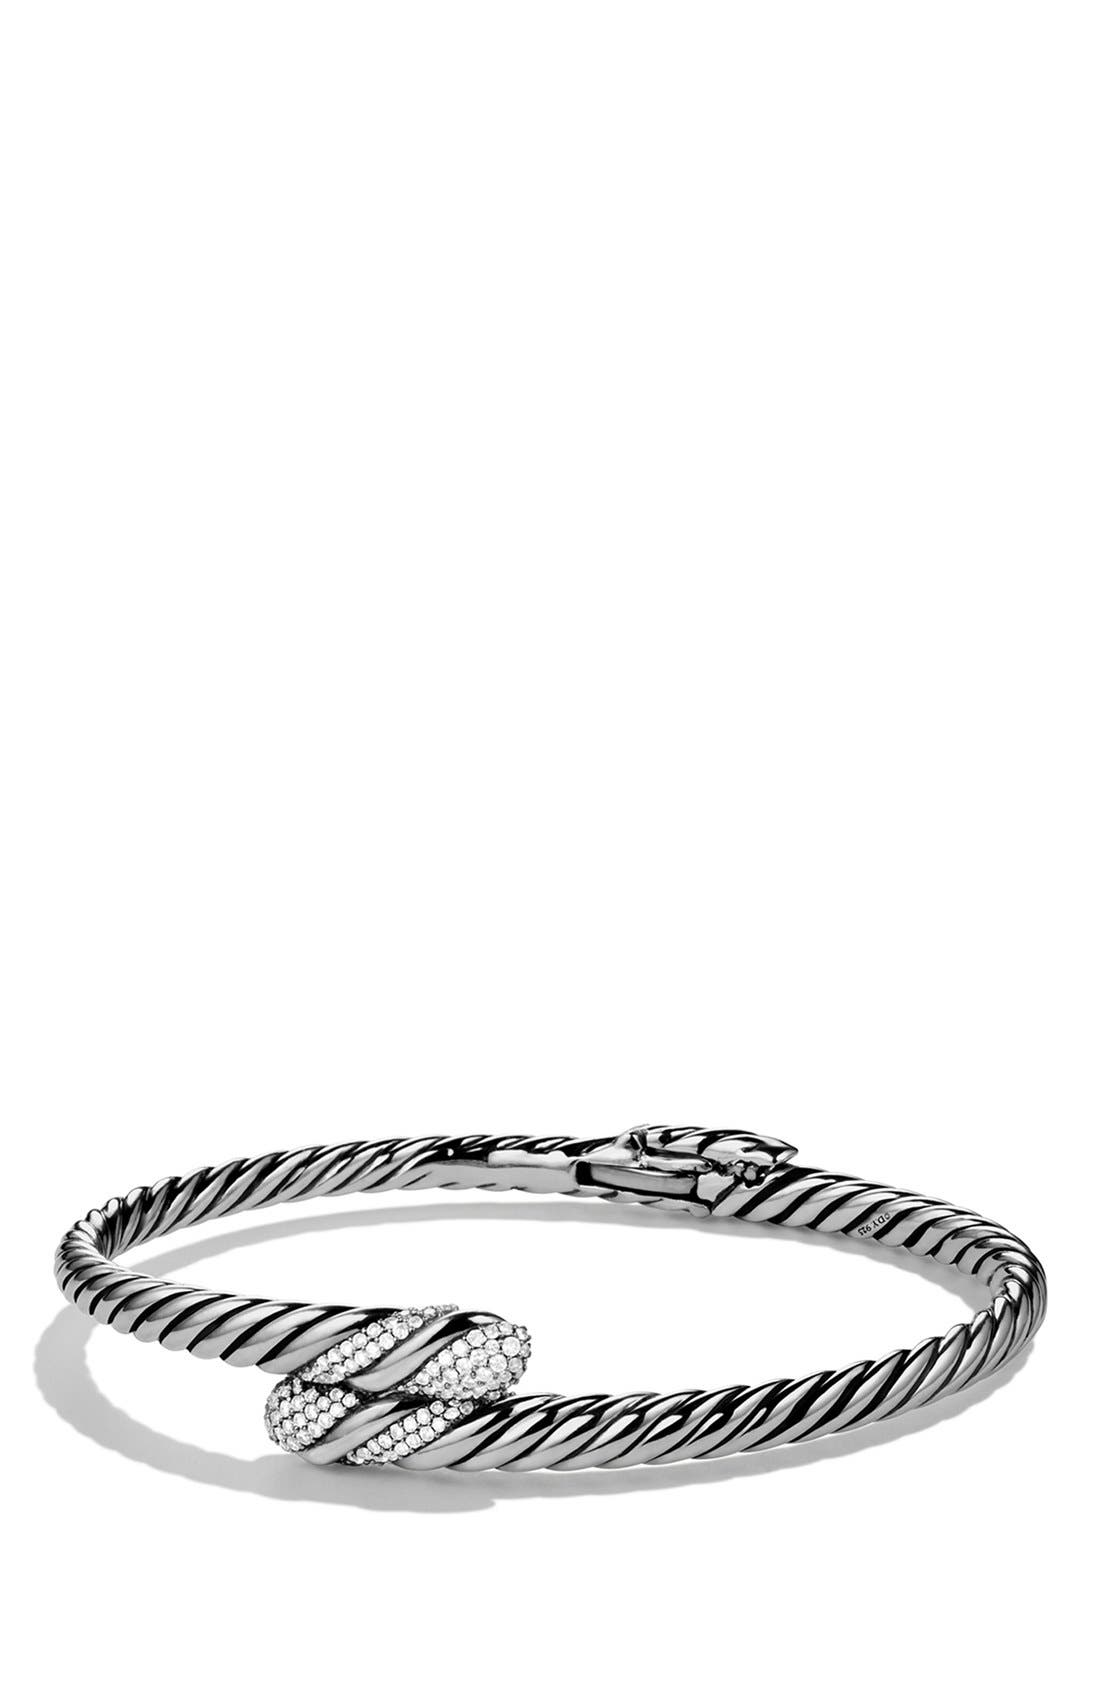 Main Image - David Yurman 'Willow' Single Row Bracelet with Diamonds